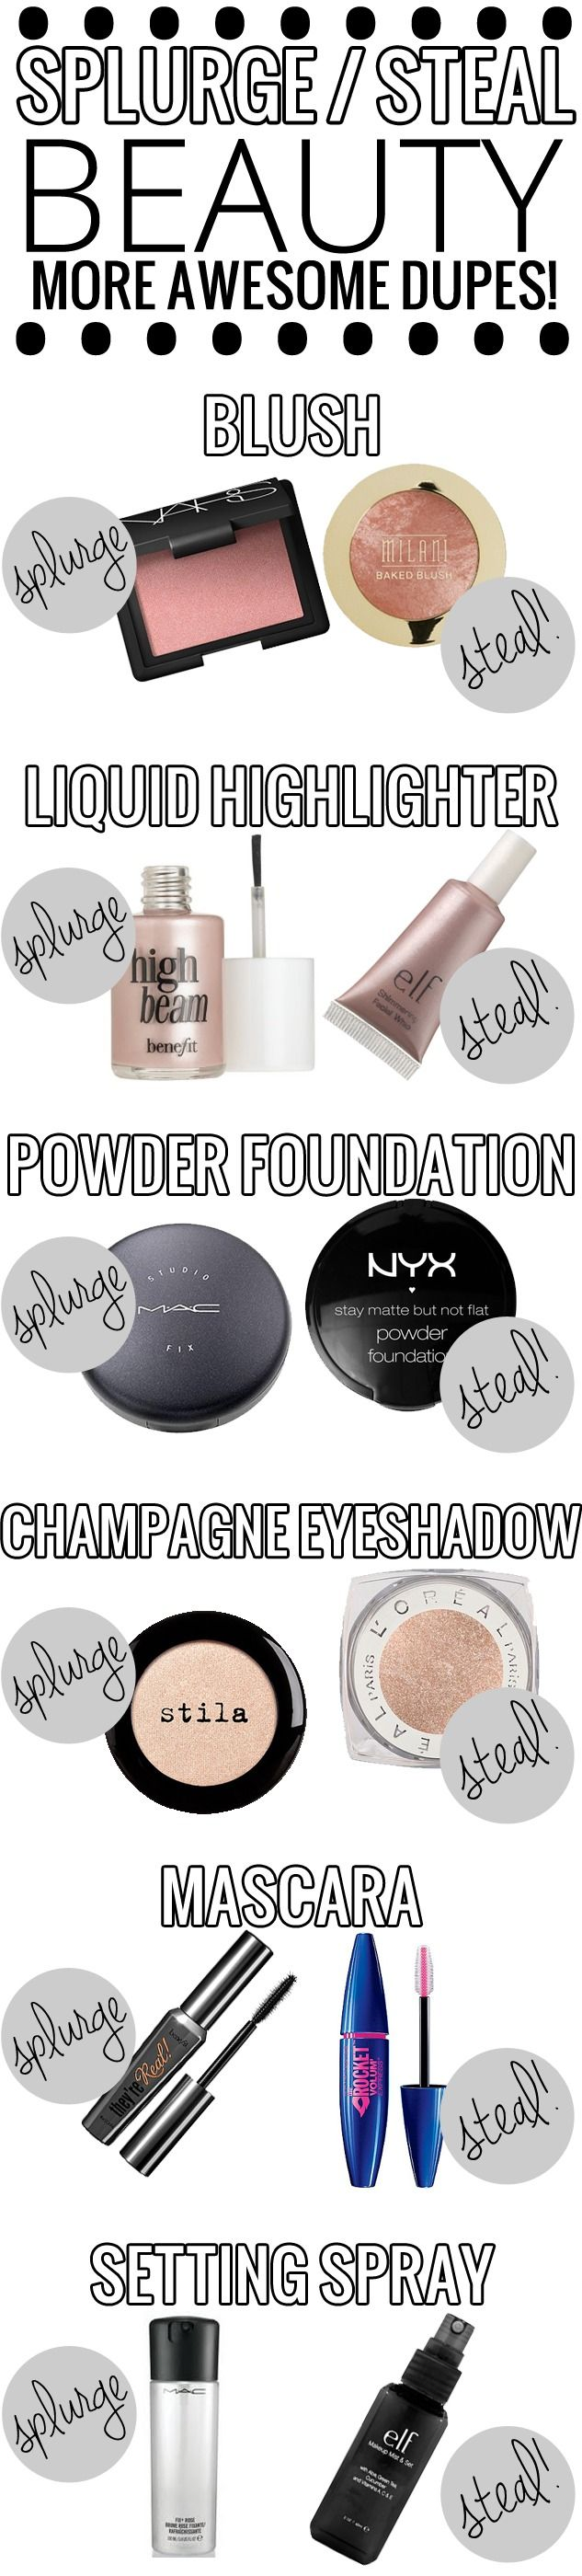 Splurge vs. Steal Beauty – AWESOME list of drugstore dupes for high end makeup!